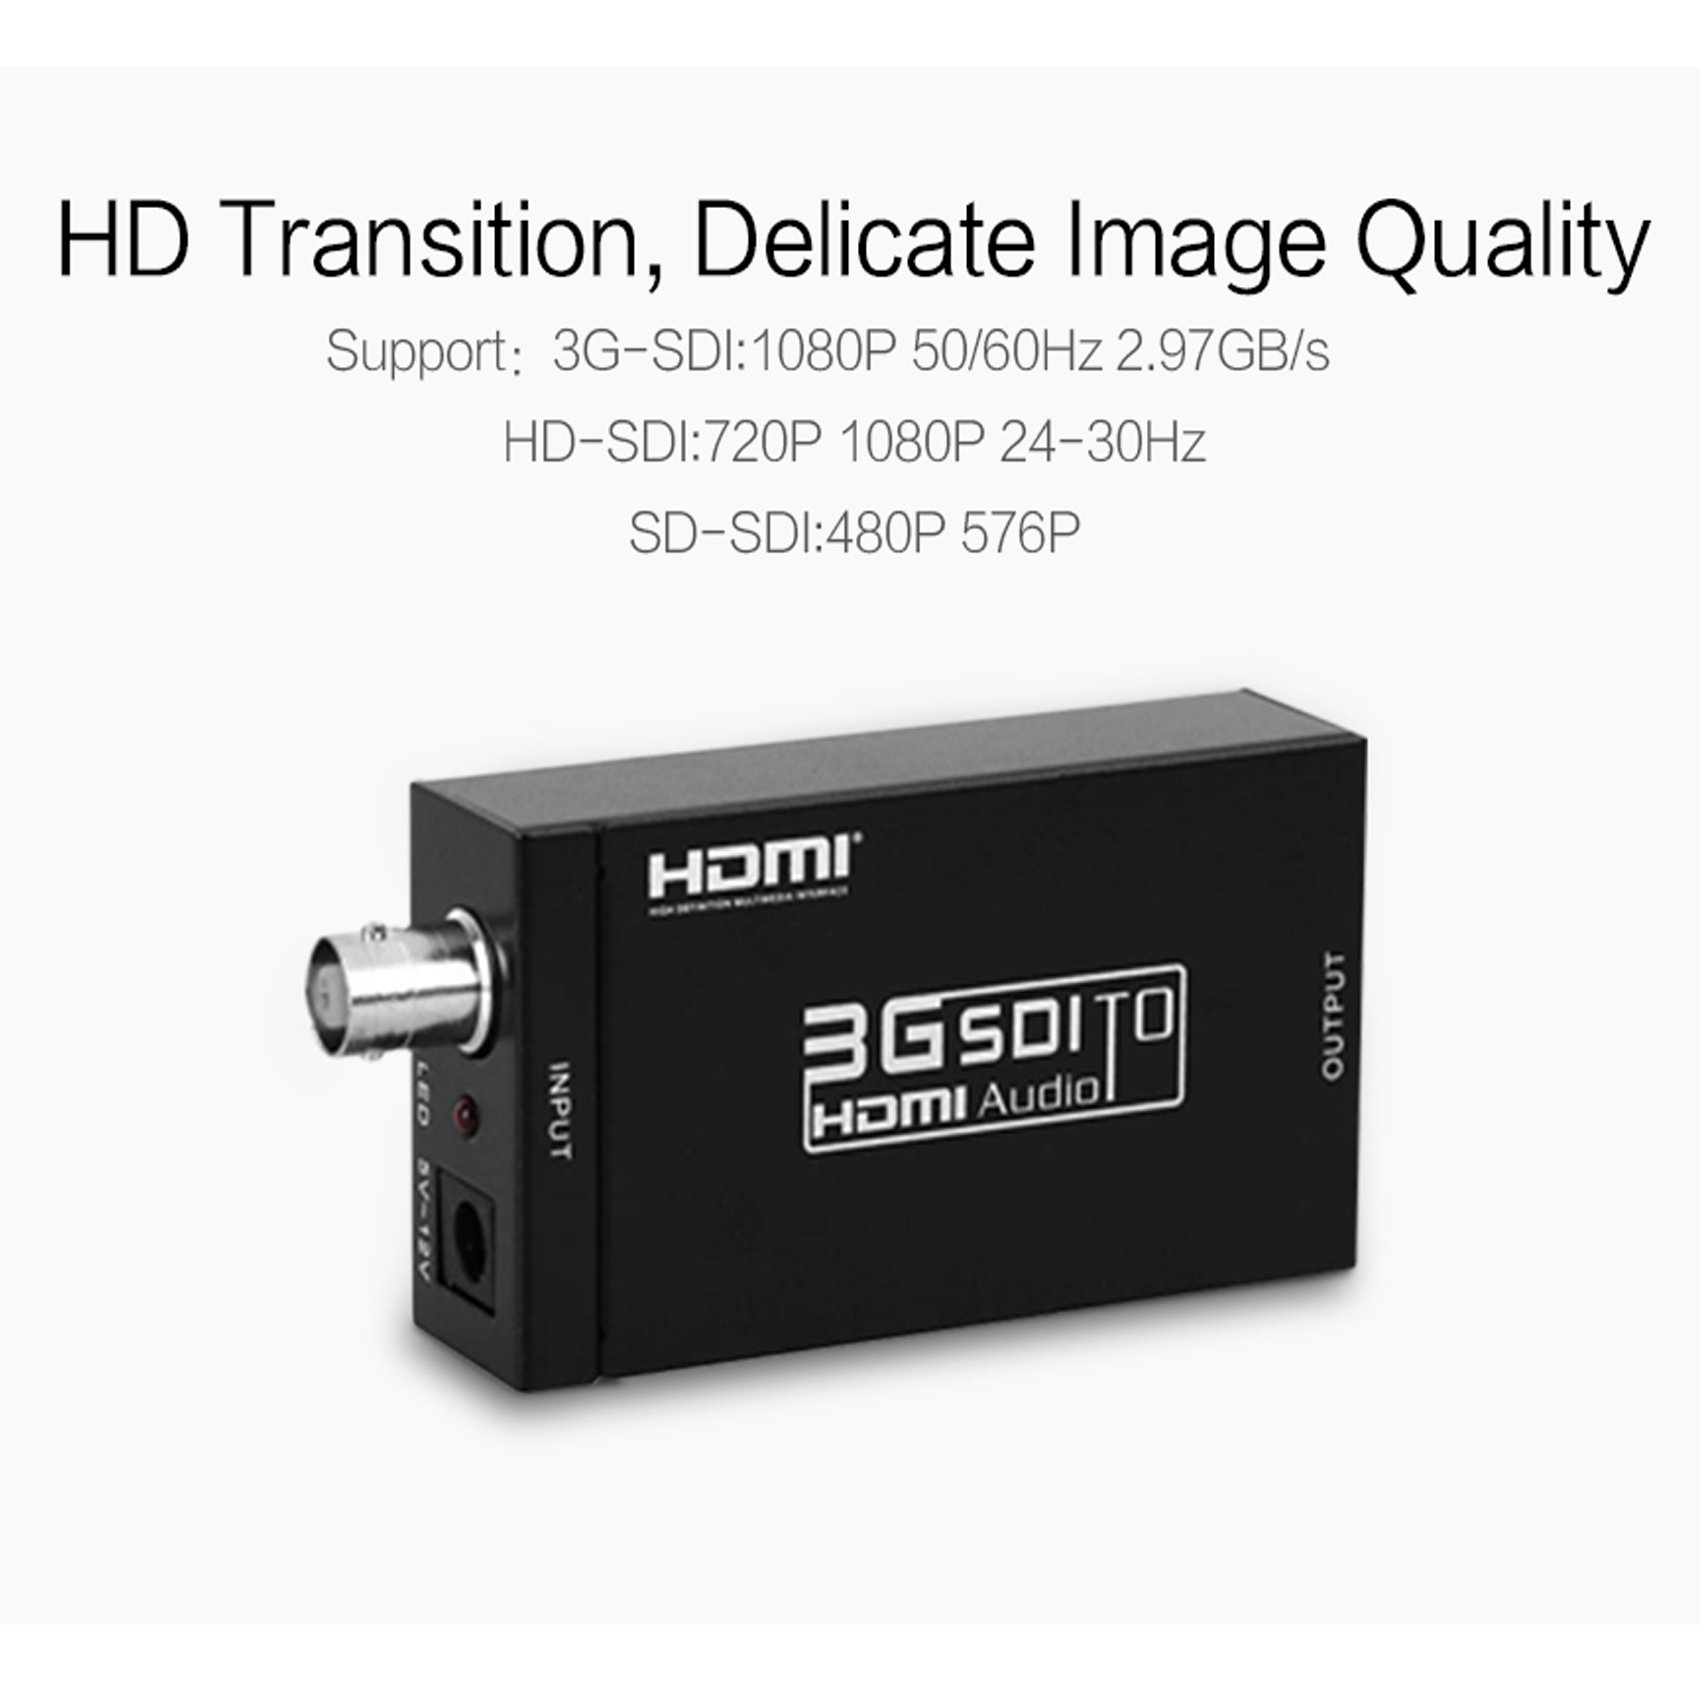 Basicolor SDI to HDMI Converter Mini 3G SDI HDMI Adapter with BNC Coaxical Support Full HD 1080p SD-SDI/HD-SDI/3G-SDI to HDMI Adapter Mini HD Video Convert for Camera PC Home Theater (Black) by Basicolor (Image #4)